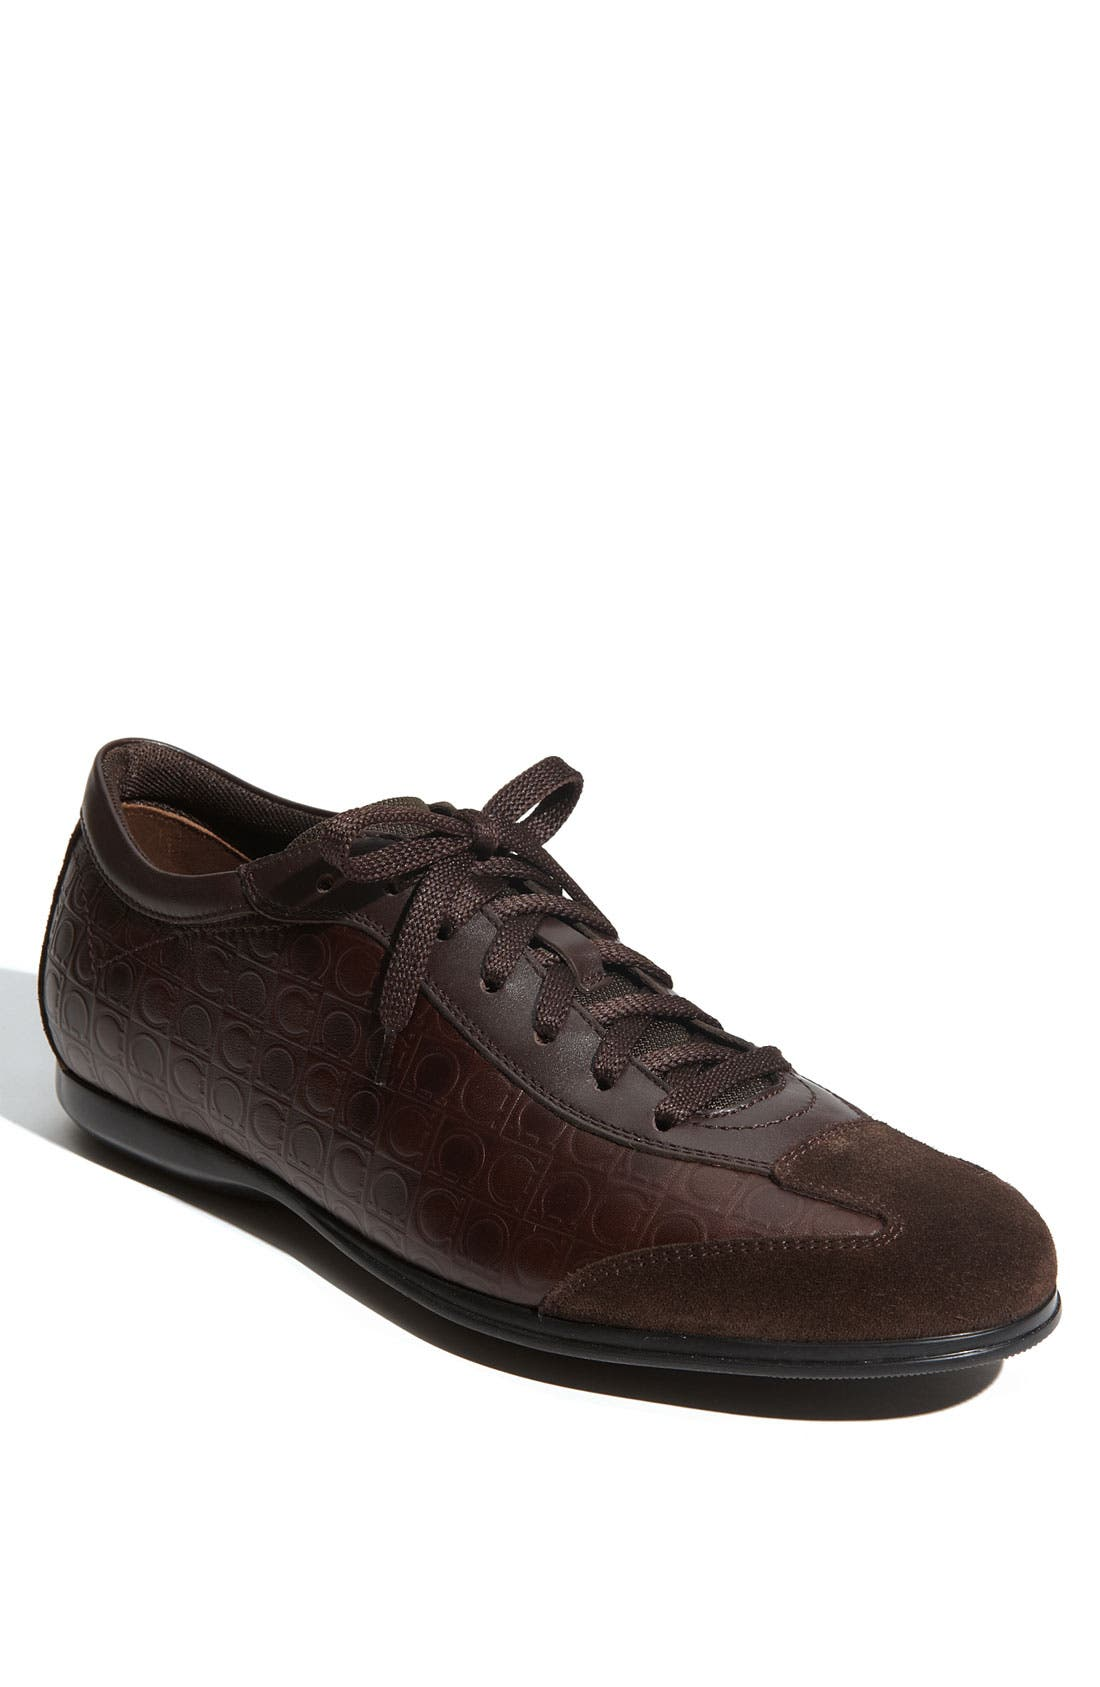 Alternate Image 1 Selected - Salvatore Ferragamo 'Falkland' Sneaker